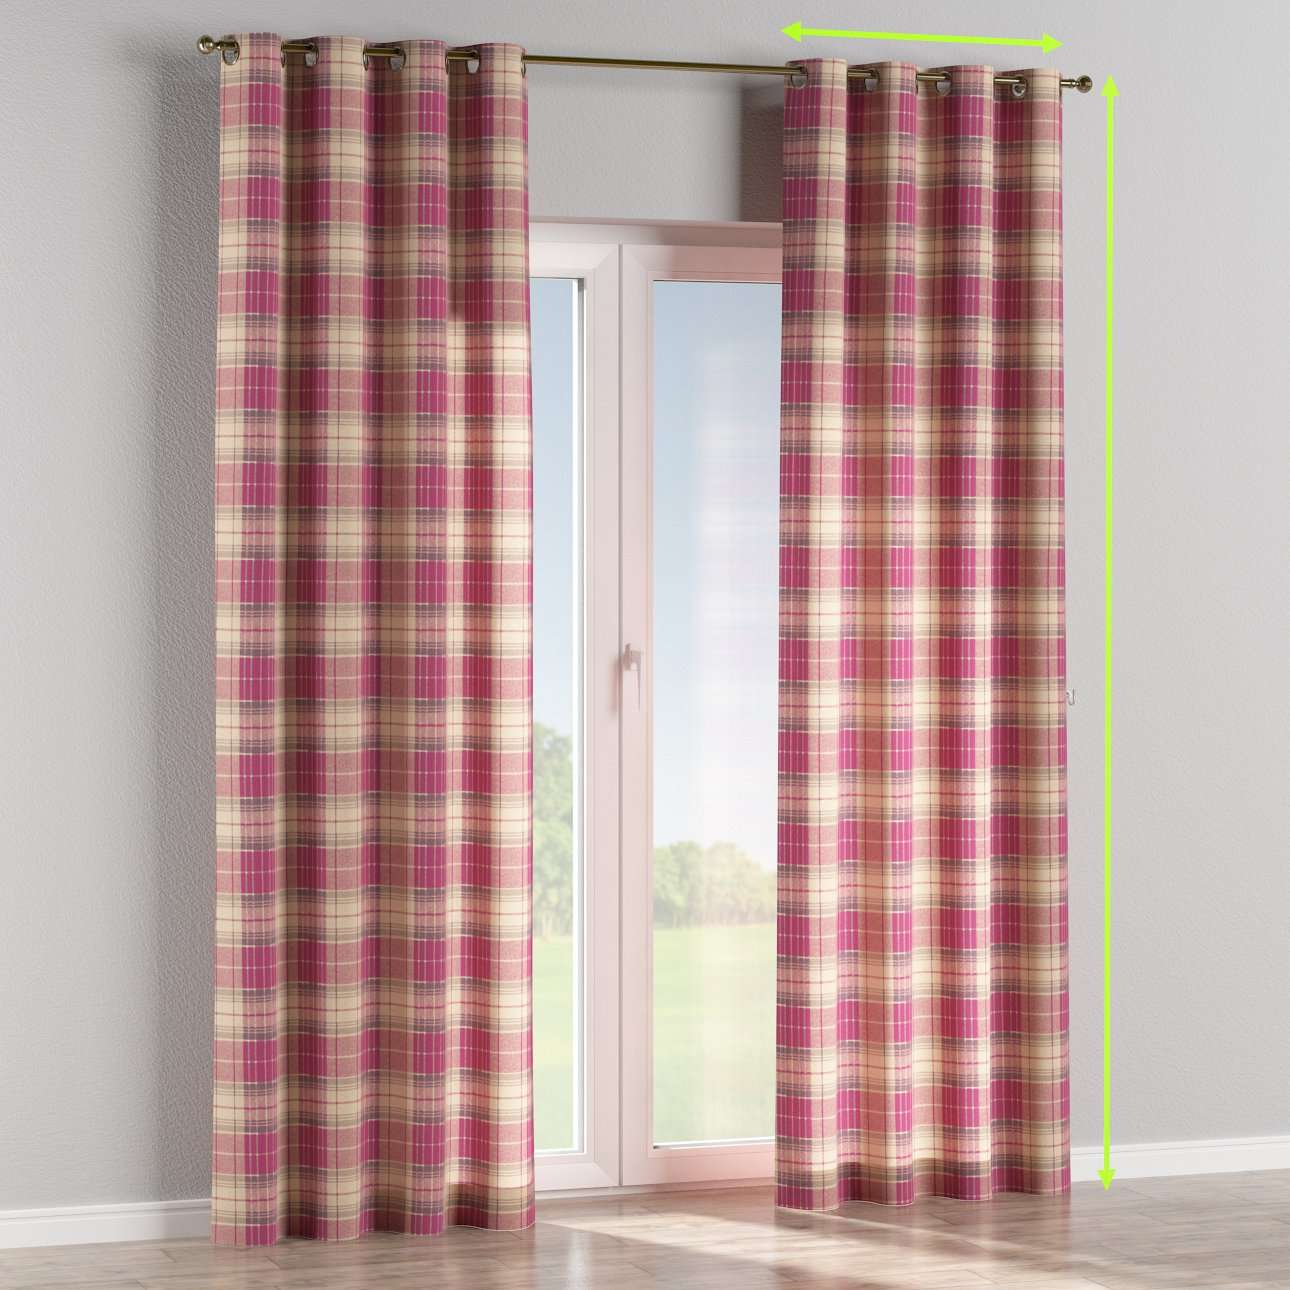 Eyelet curtains in collection Mirella, fabric: 142-07